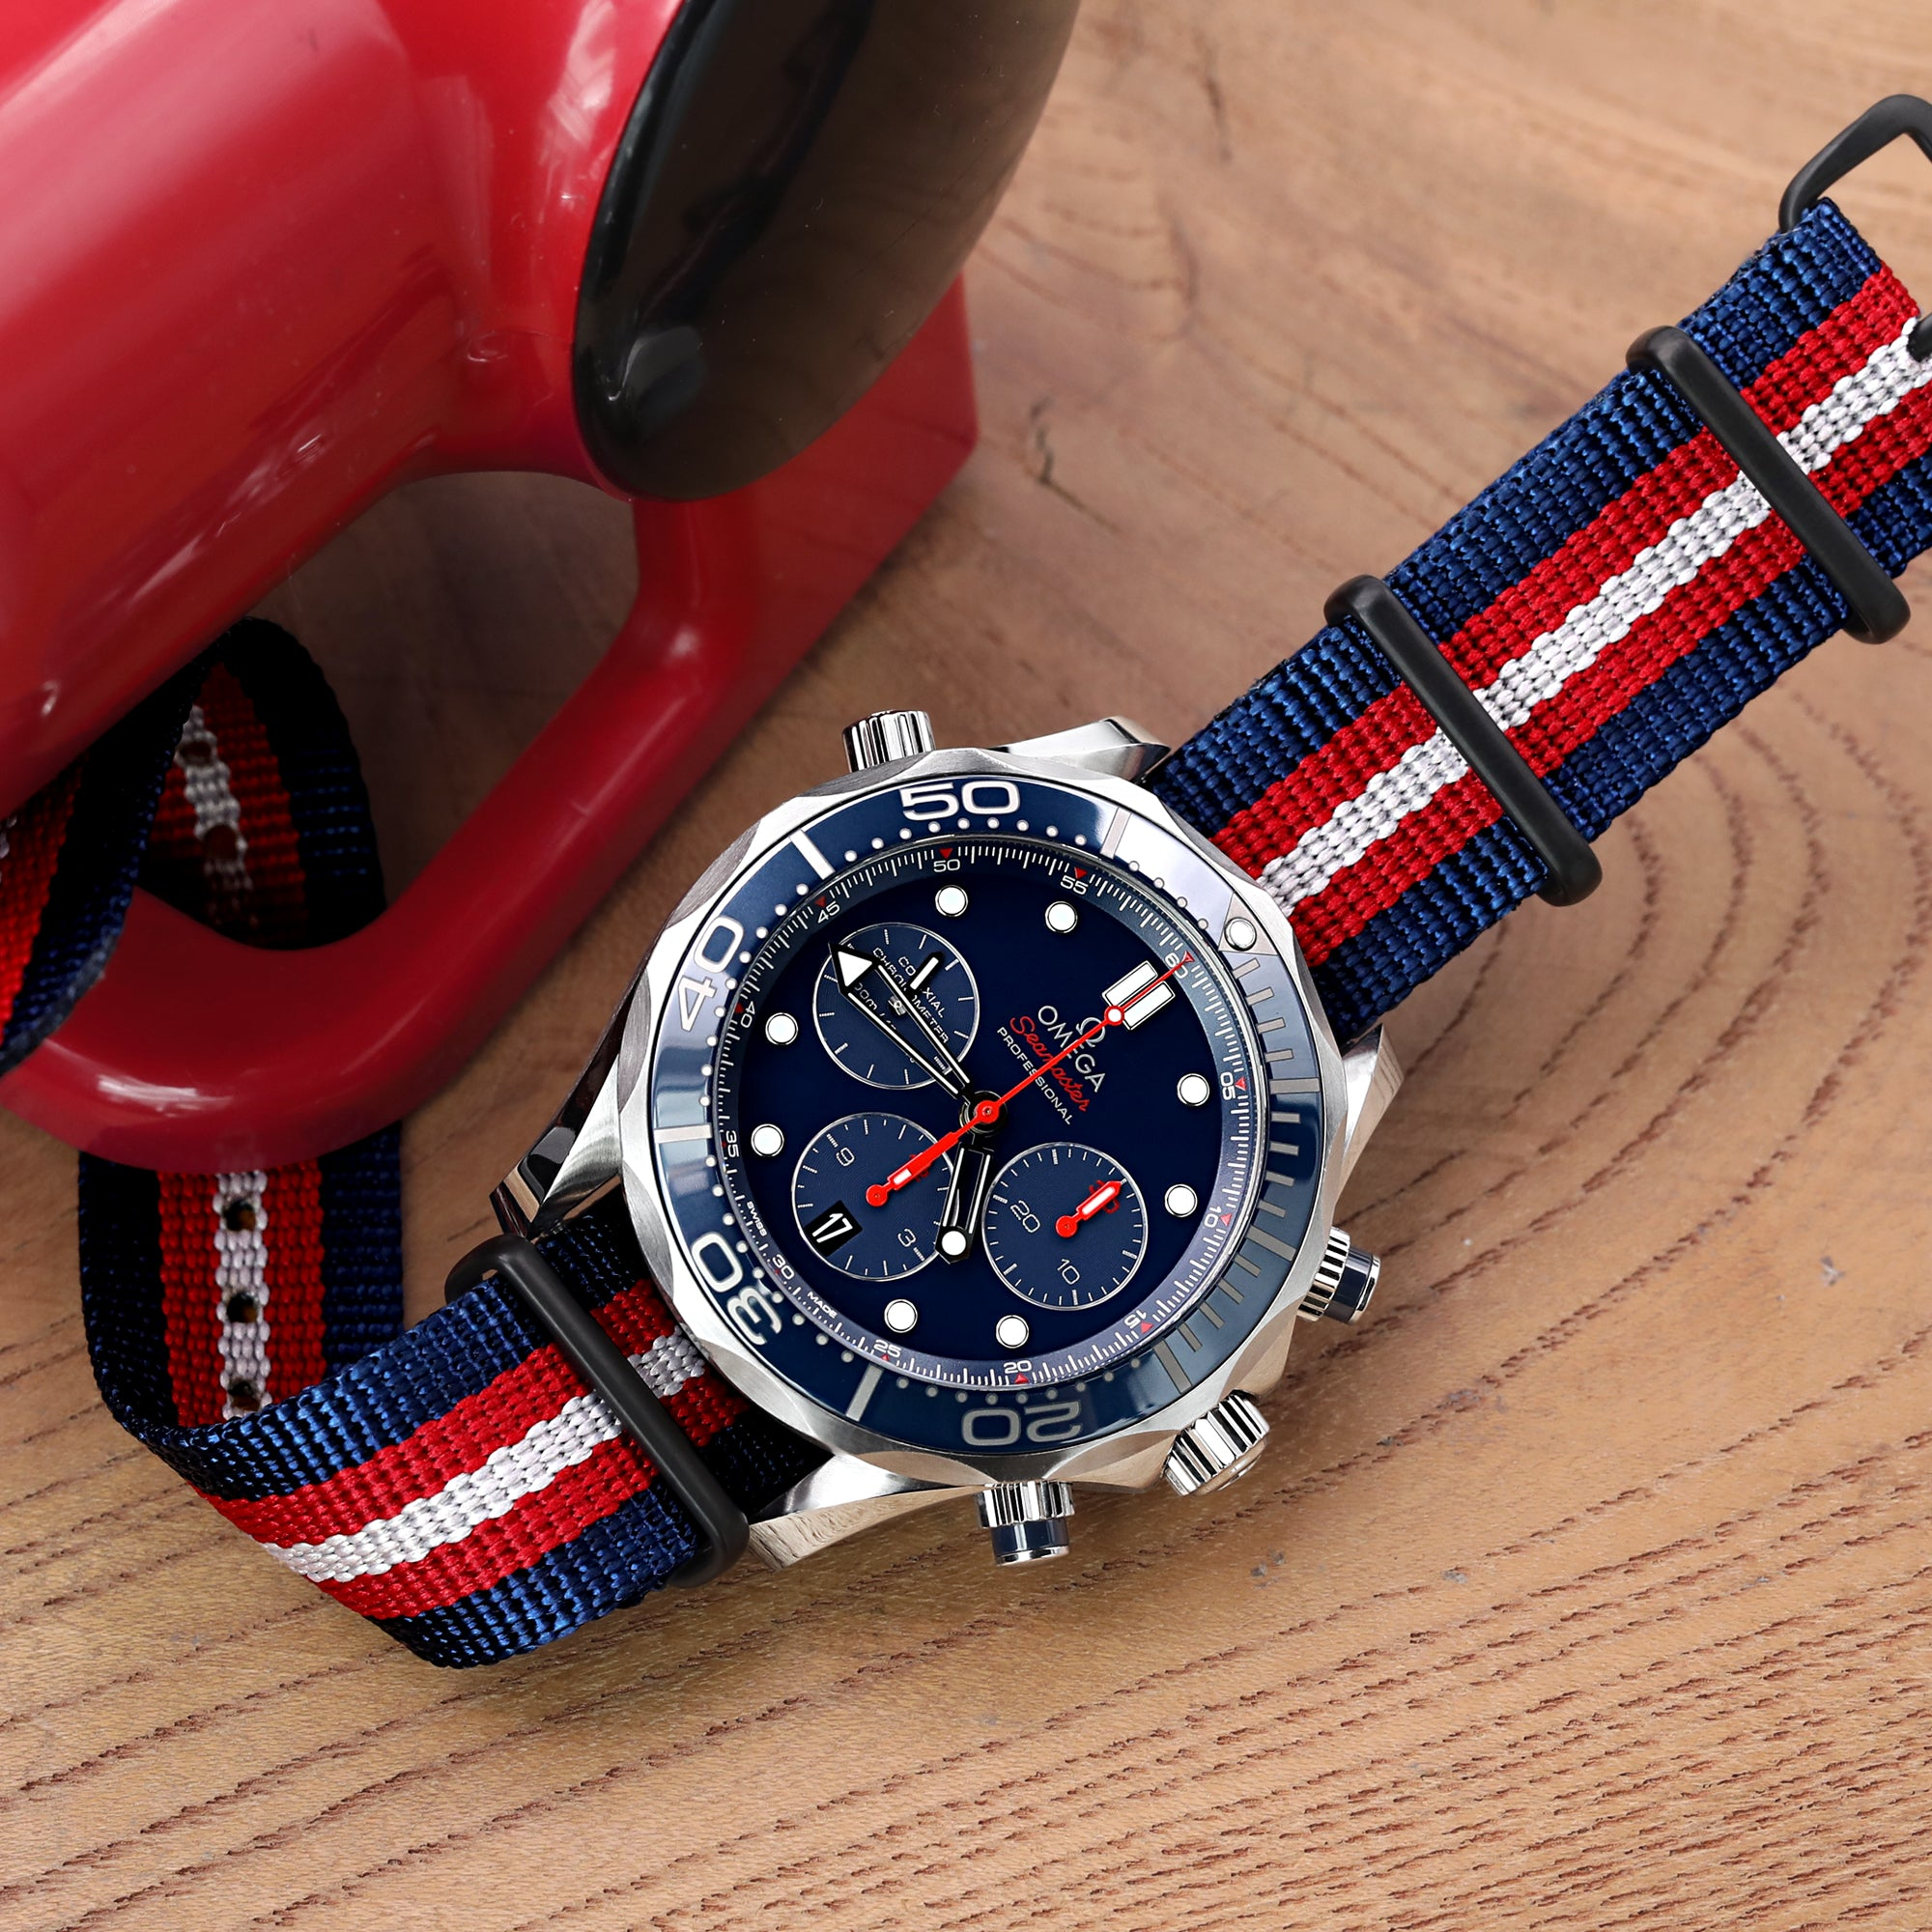 MiLTAT 20mm 21mm or 22mm G10 NATO Bullet Tail Watch Strap Ballistic Nylon PVD Blue Red & Grey Stripes Strapcode Watch Bands